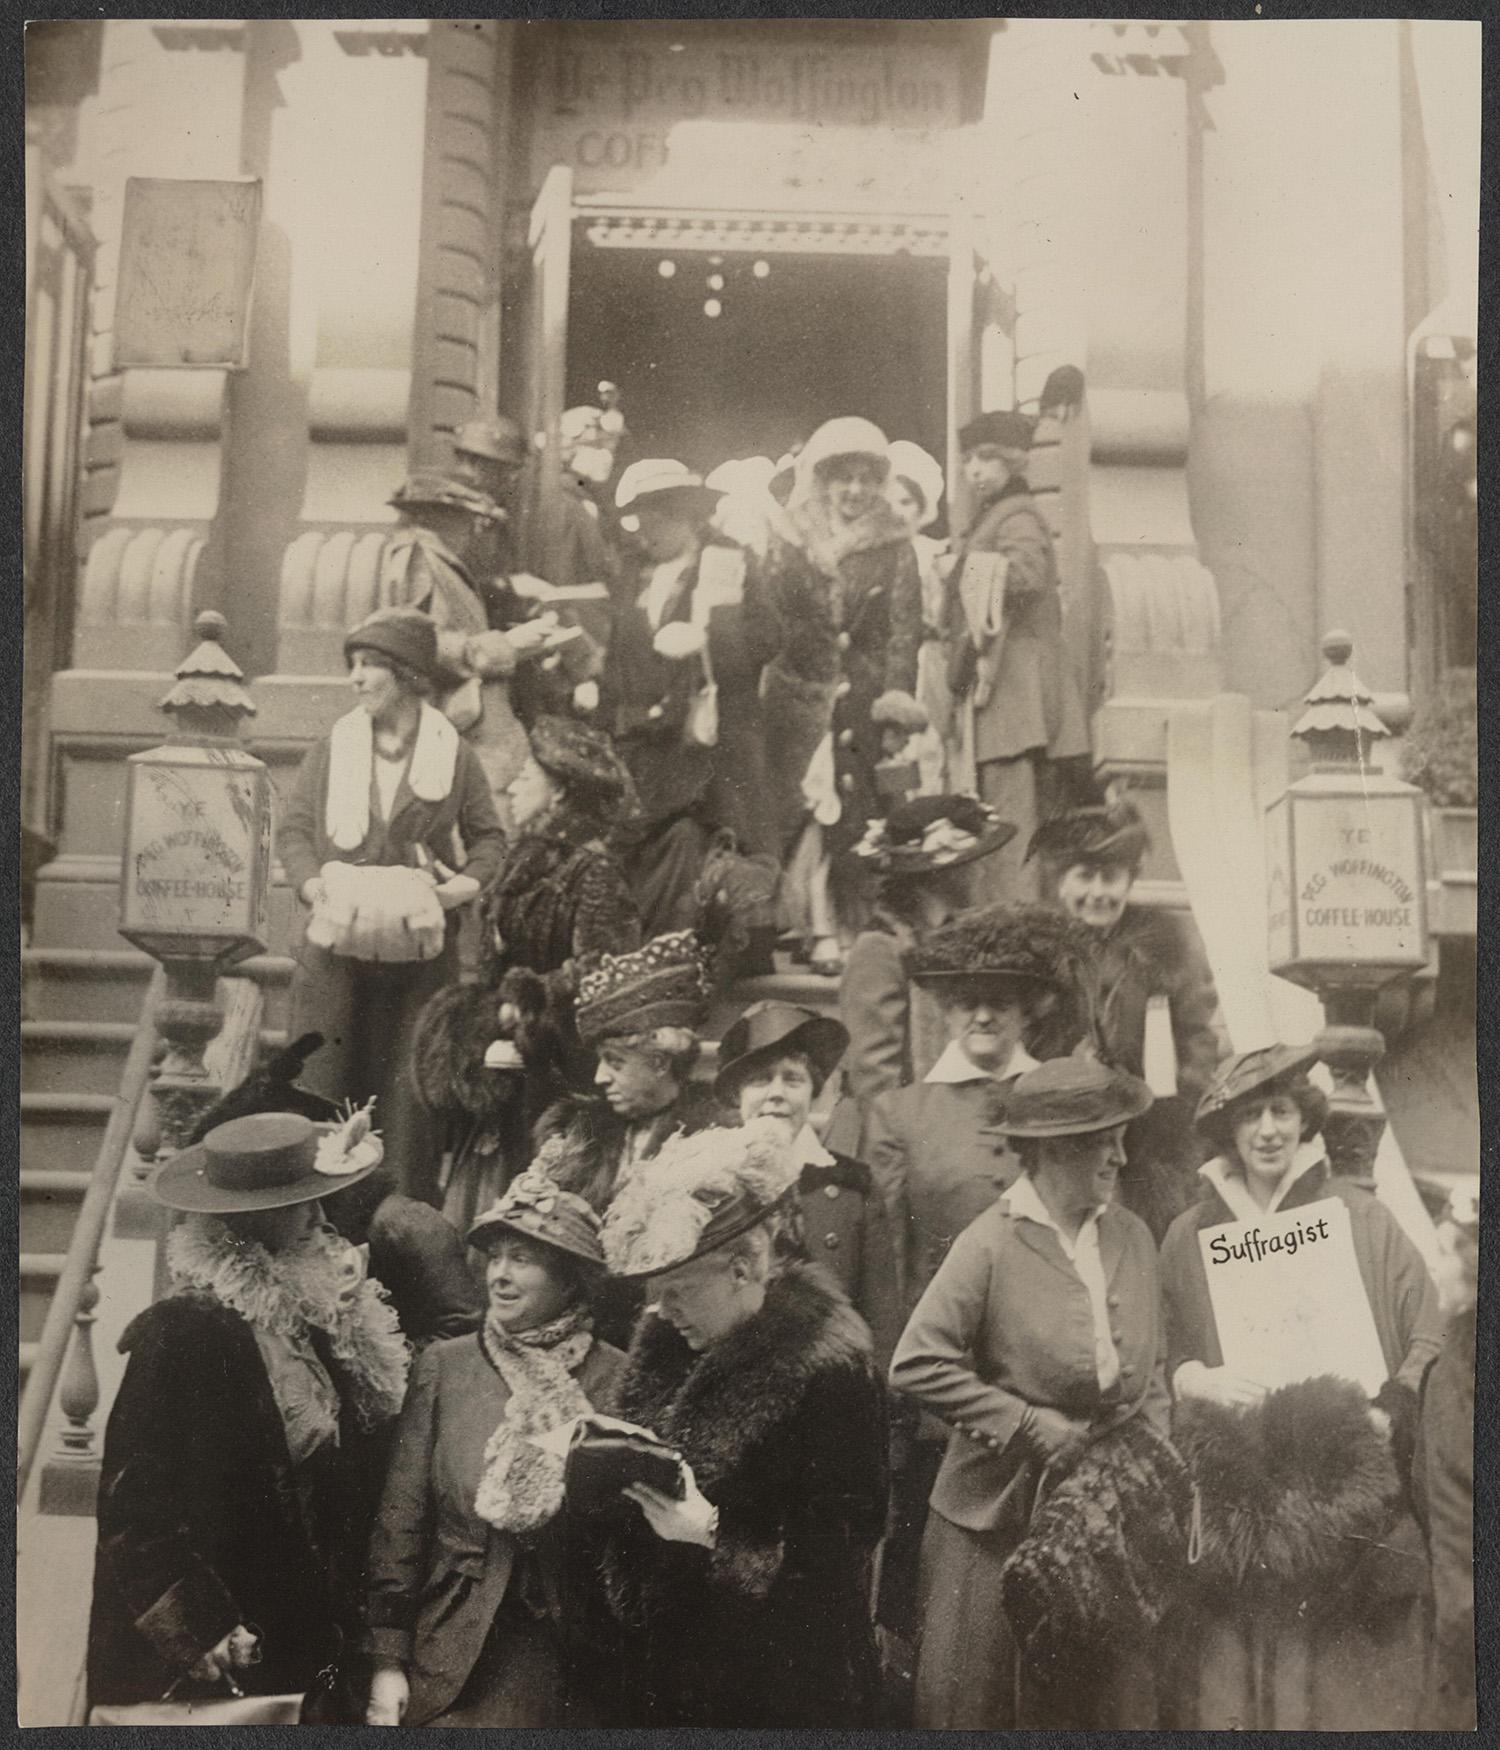 <p>Congressional Union for Woman Suffrage Advisory Council leaving the Peg Woffington Coffee House in New York in 1915. Left to right (front row): Elizabeth Colt, Elizabeth Kent, Mrs. John Rogers, Mrs. Olive Halladay Hasbrouck, Hazel MacKaye (far right, holds a copy of The Suffragist); (second row): Mrs. George A. Armes, Lucy Burns (center), Mrs. Oscar F. Davisson. (Records of the National Woman's Party/Library of Congress) </p>